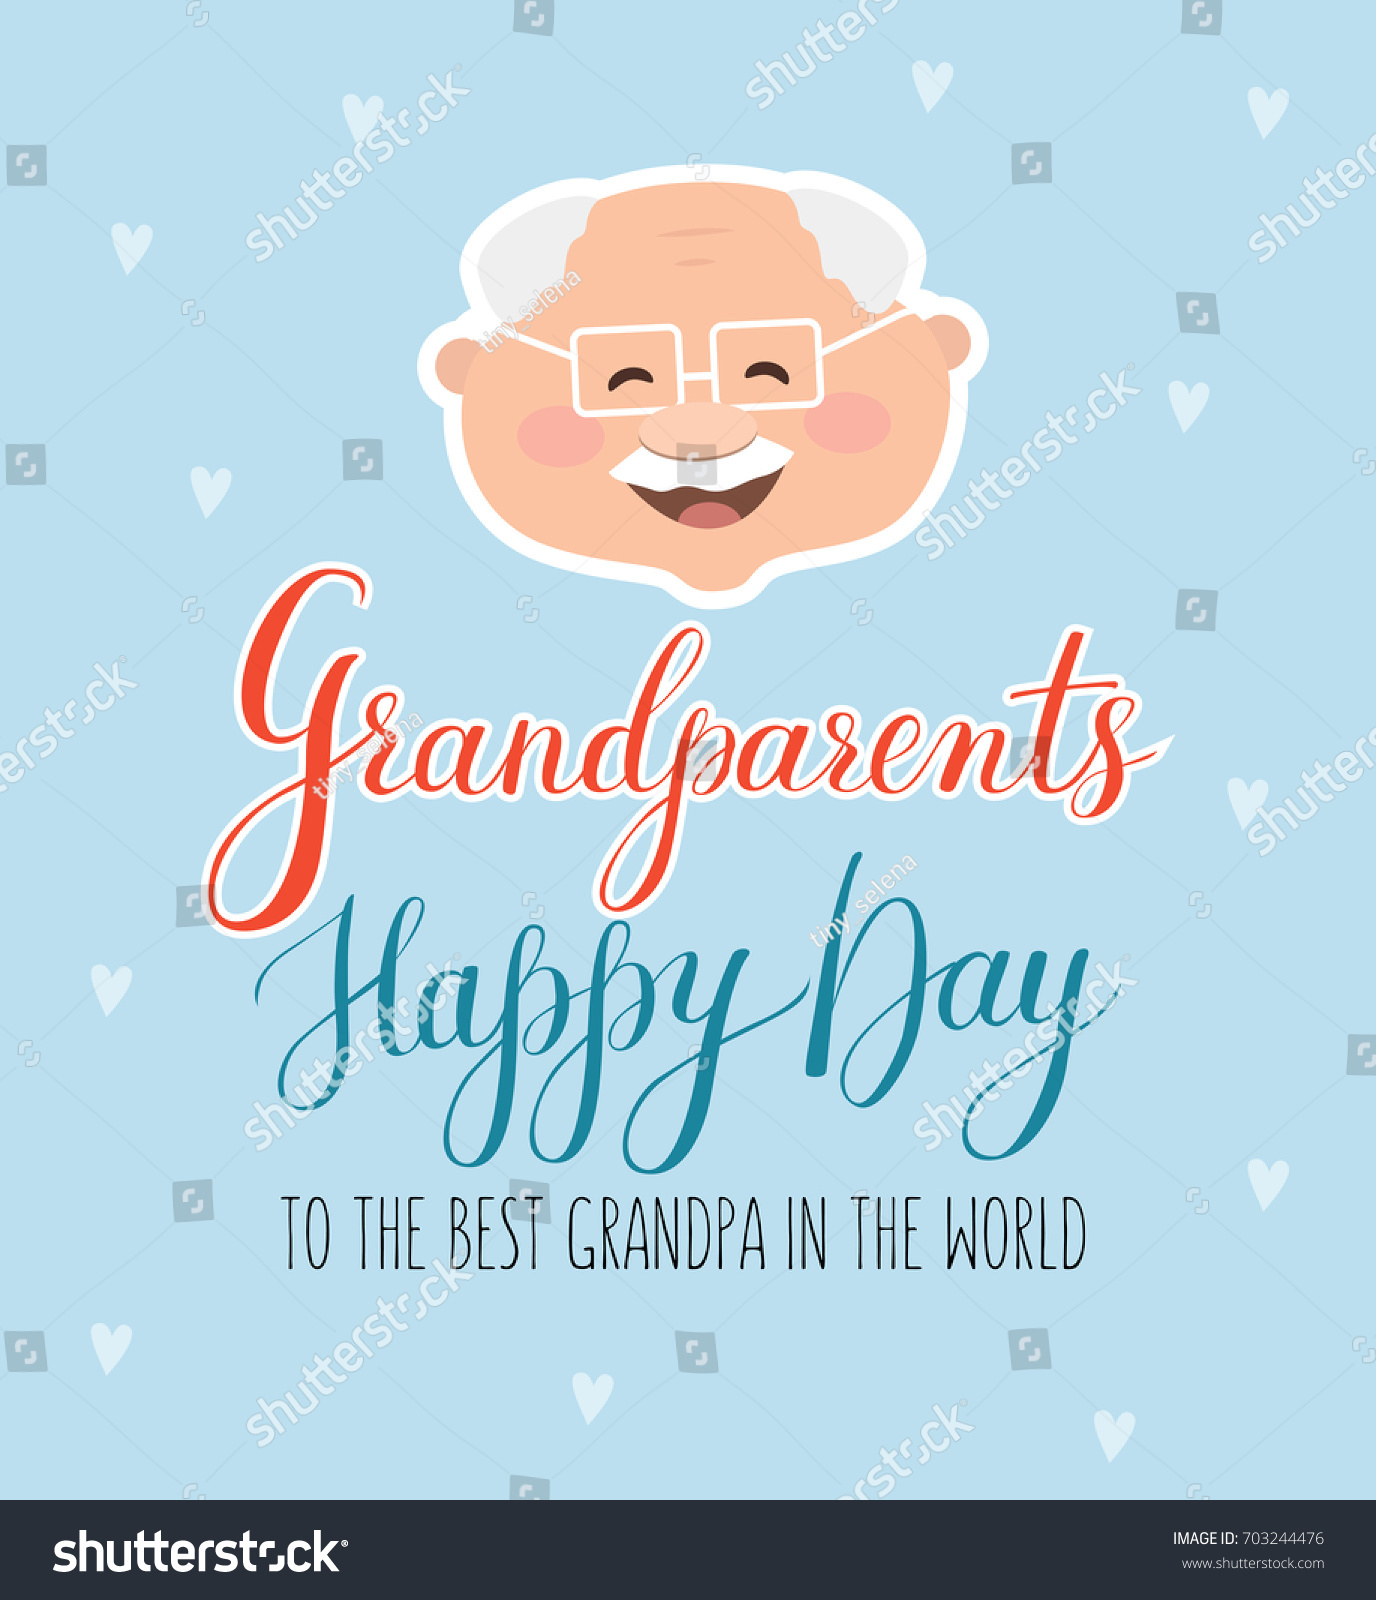 Happy grandparents day cards vatozozdevelopment happy grandparents day cards m4hsunfo